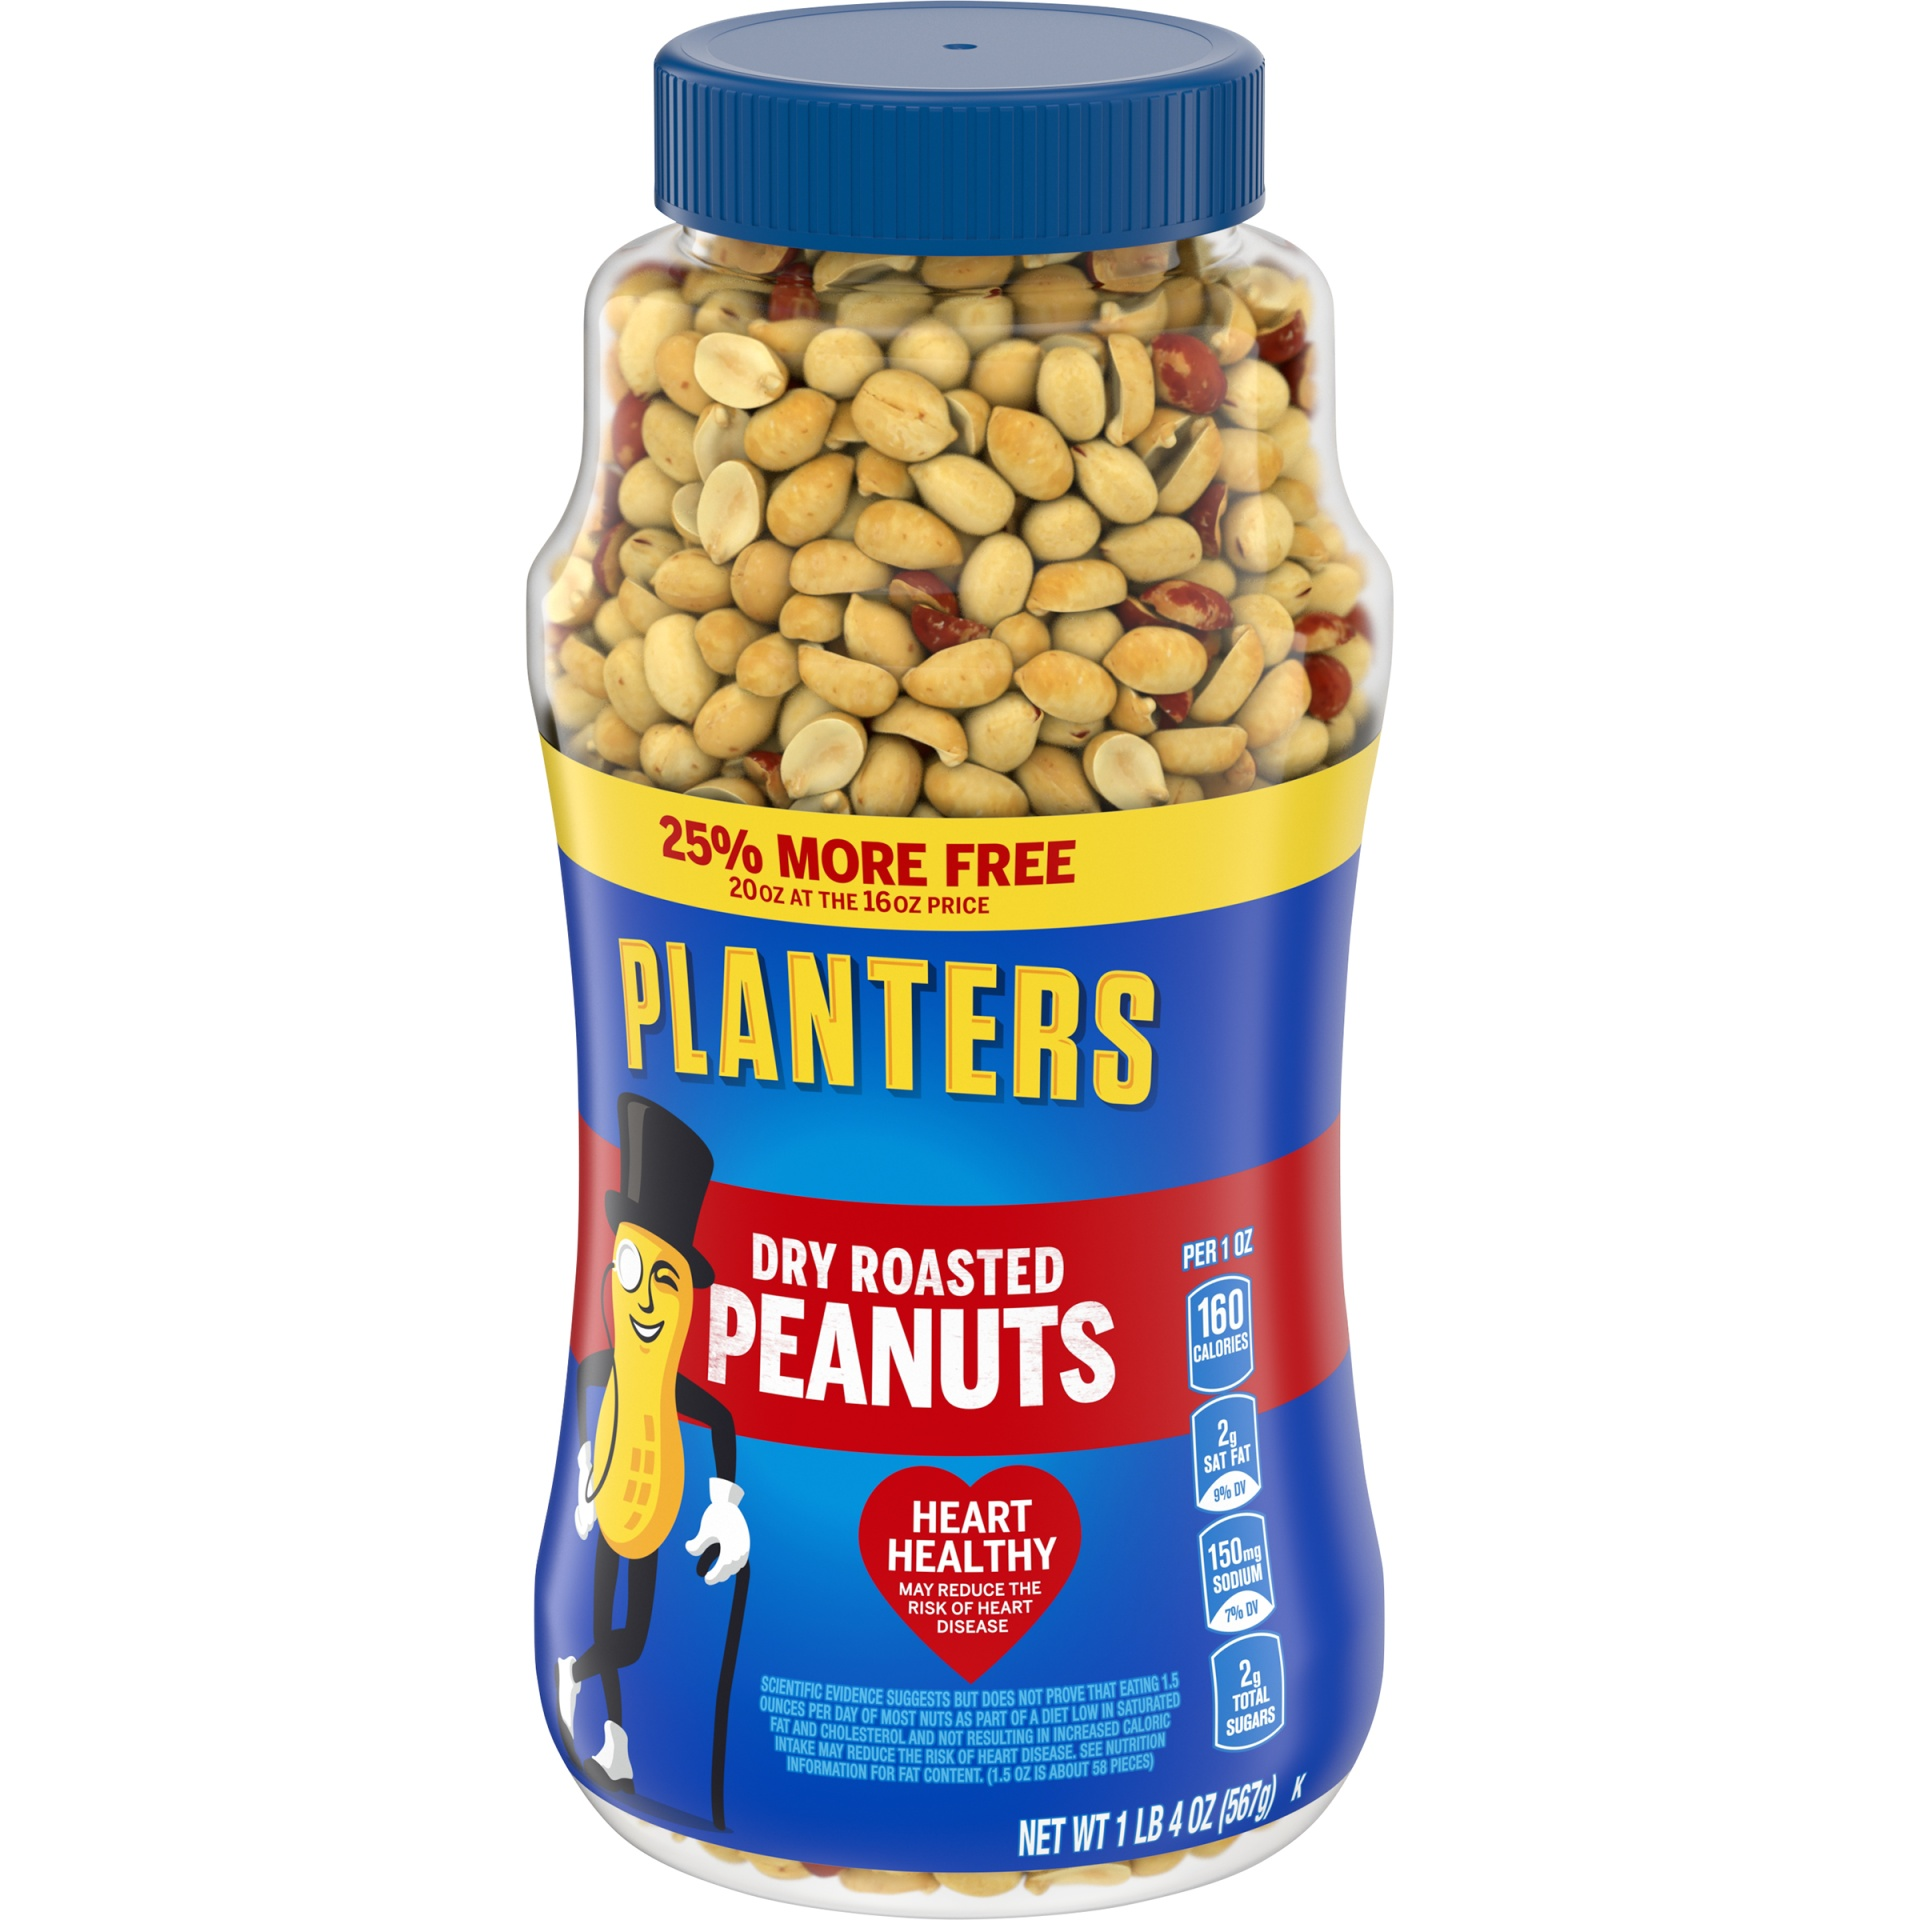 slide 4 of 7, Planters Dry Roasted Peanuts,